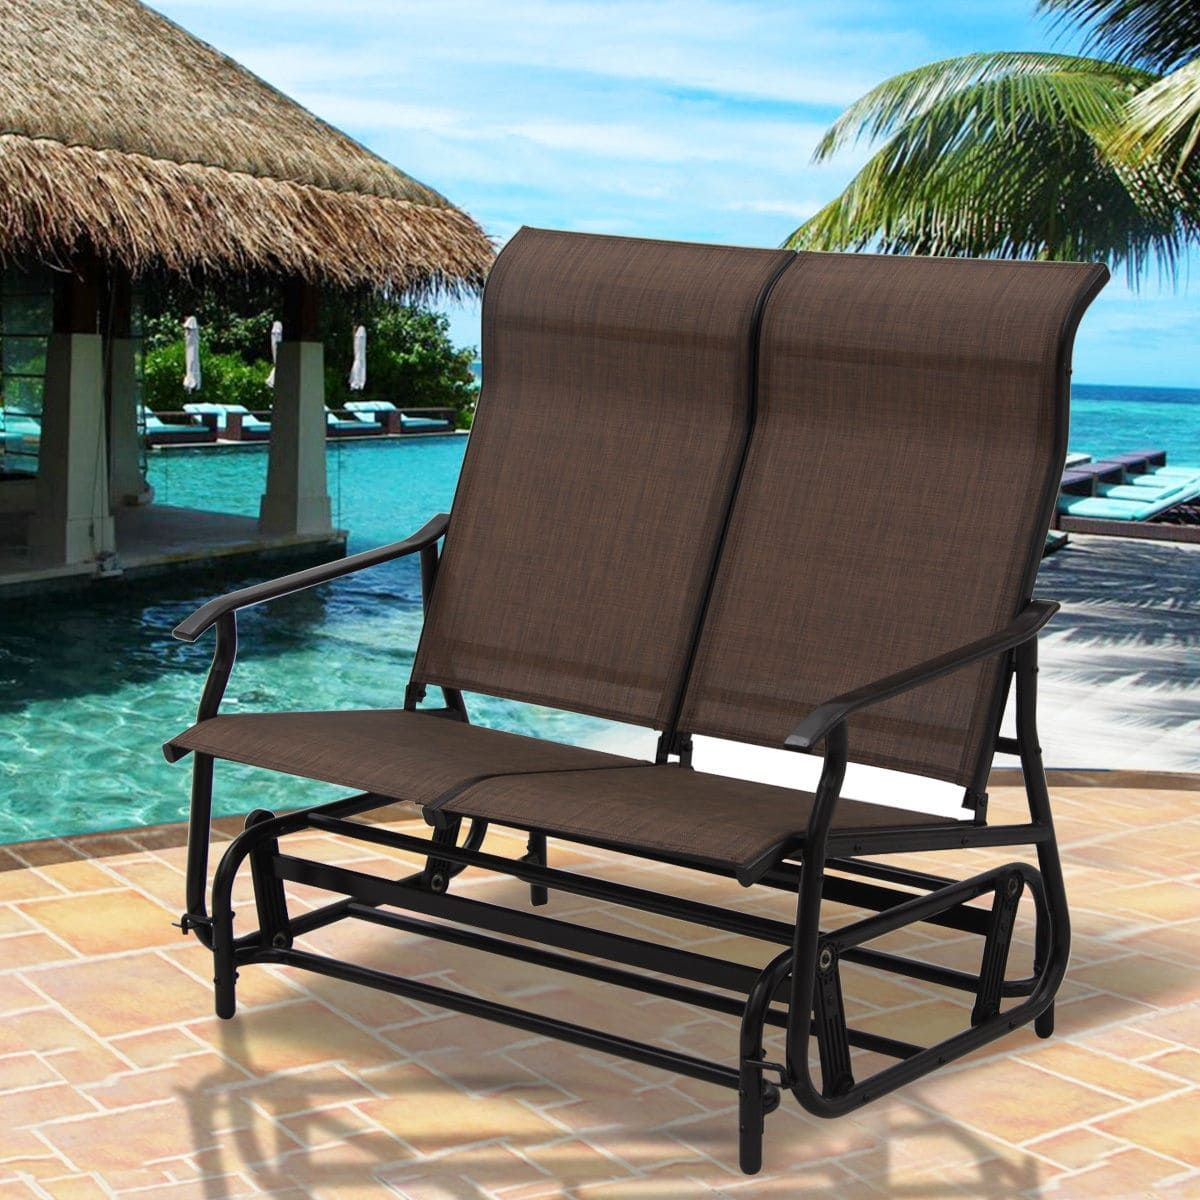 Costway 2 person patio glider rocking bench double chair